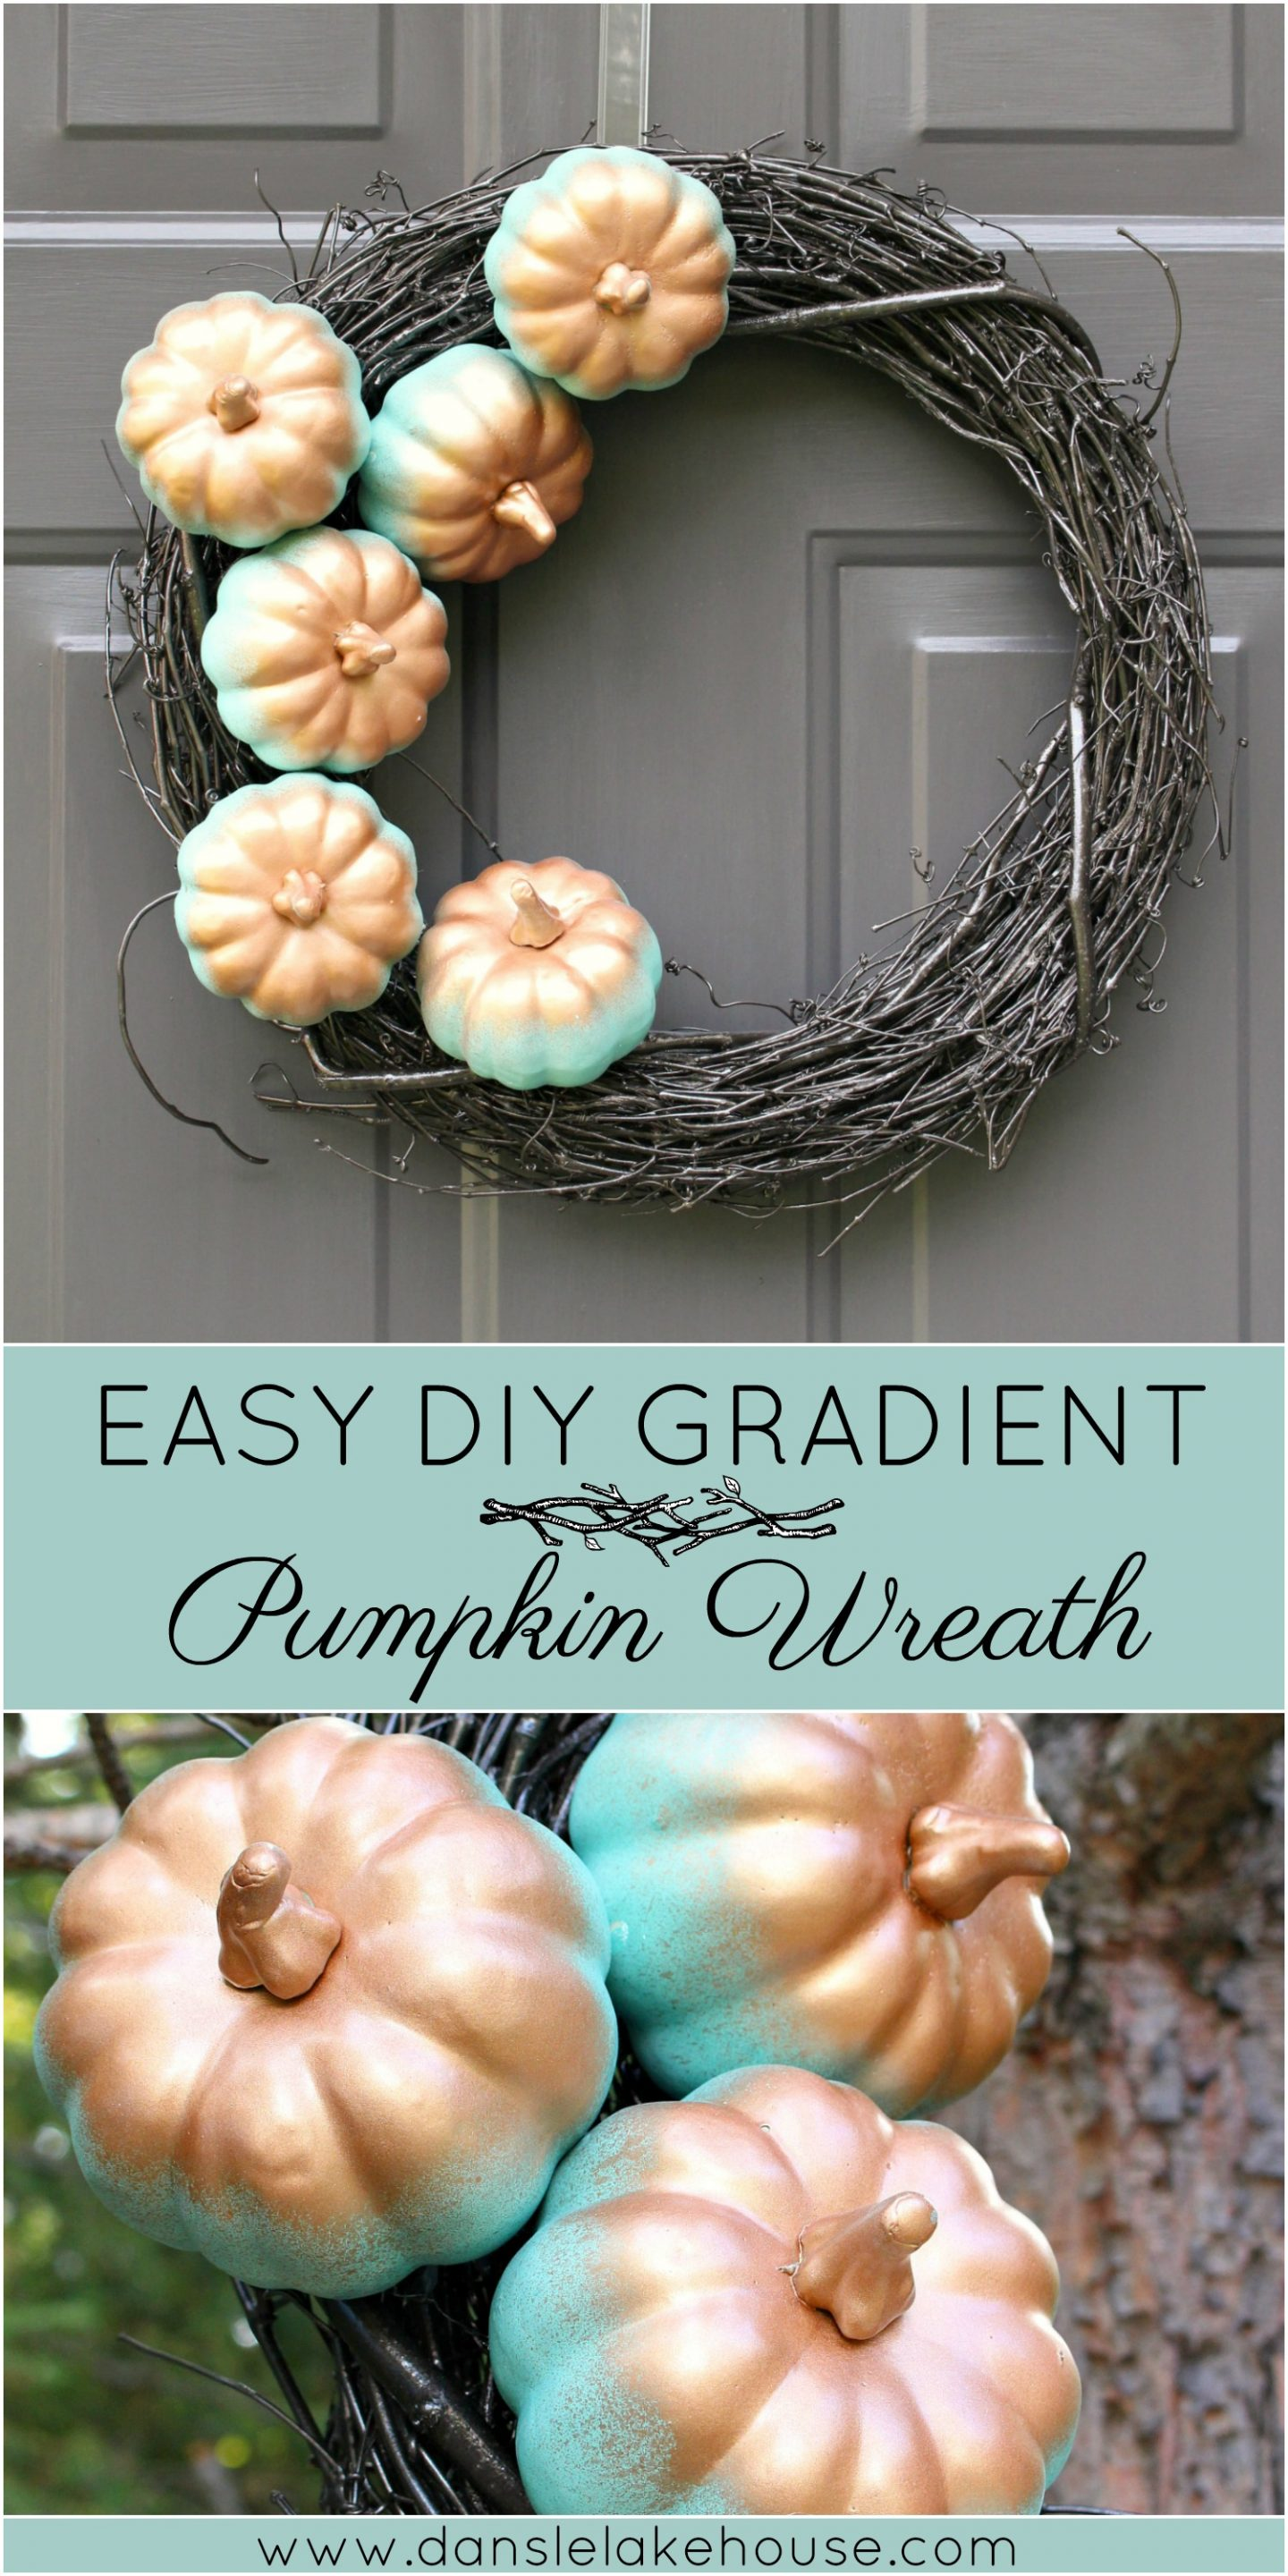 DIY Pumpkin Wreath with Aqua and Copper Gradient Pumpkins